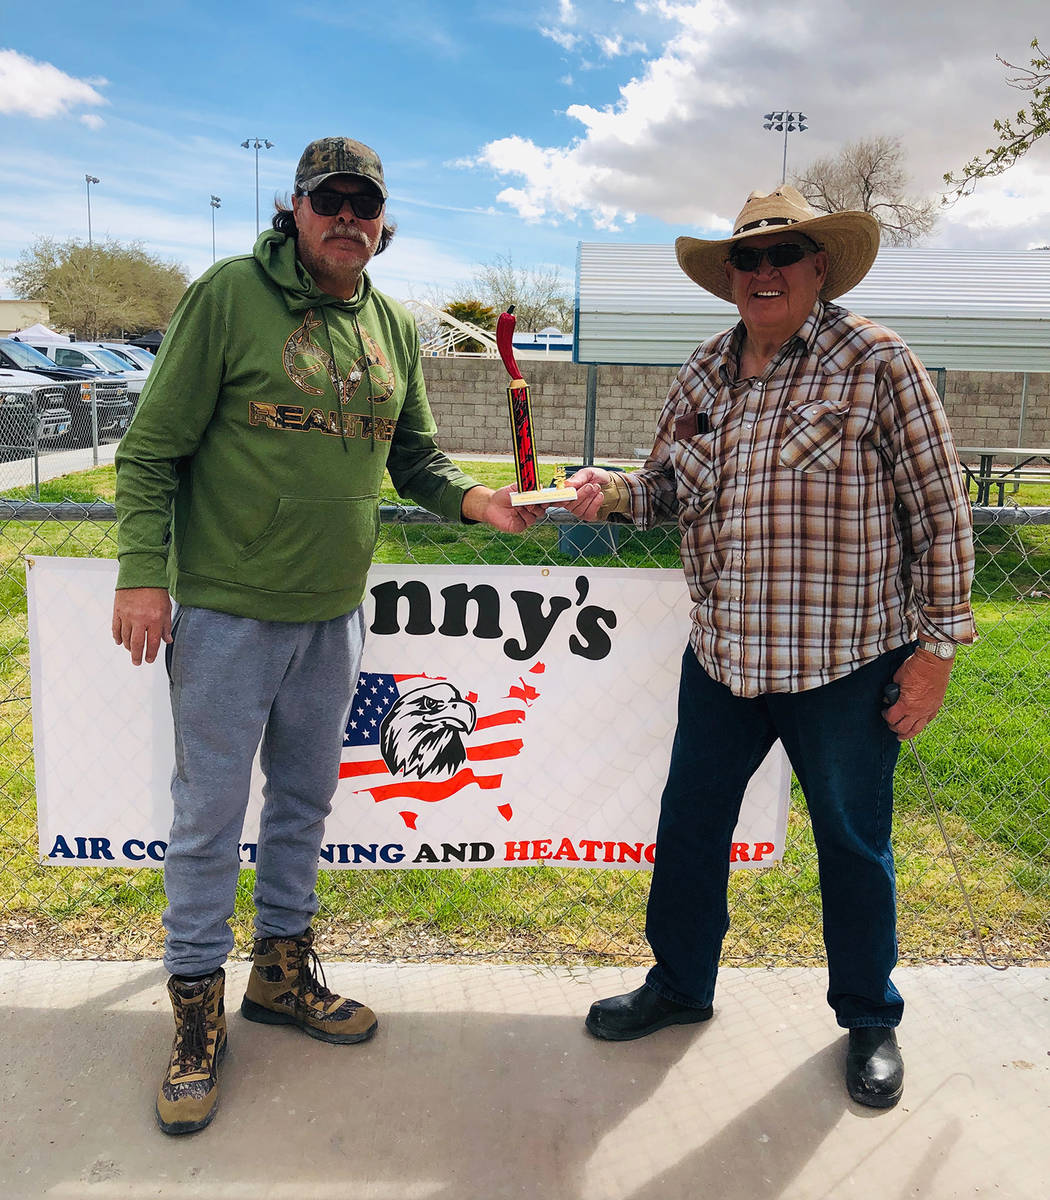 Cindy Barefield/Special to the Pahrump Valley Times Dennis Andersen, who teamed with Mike Norto ...